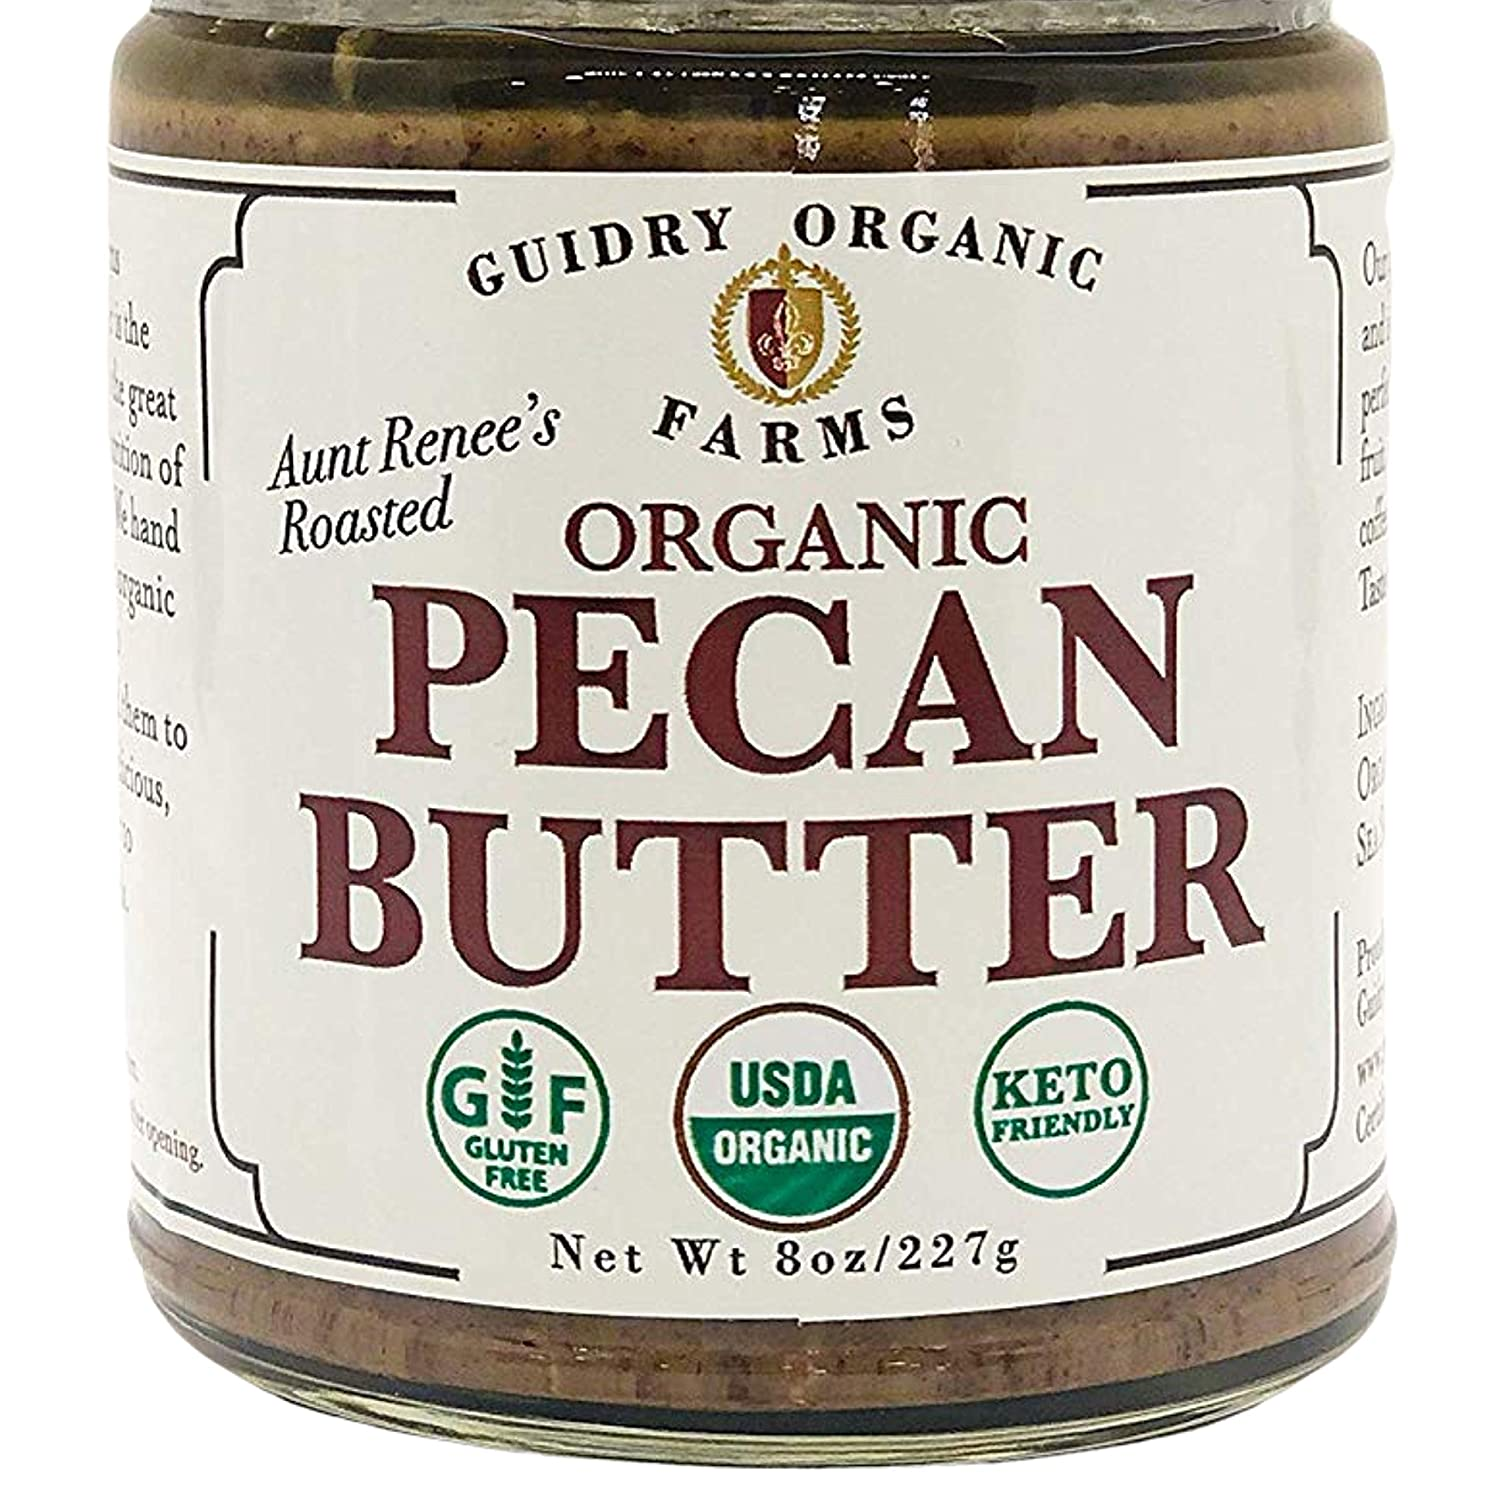 USDA Certified Organic Pecan Butter, Handmade, Small batches, Keto Friendly, Gluten Free, All Natural, made of Organic Pecans, and Sea Salt , no other additives! NO SUGAR ADDED